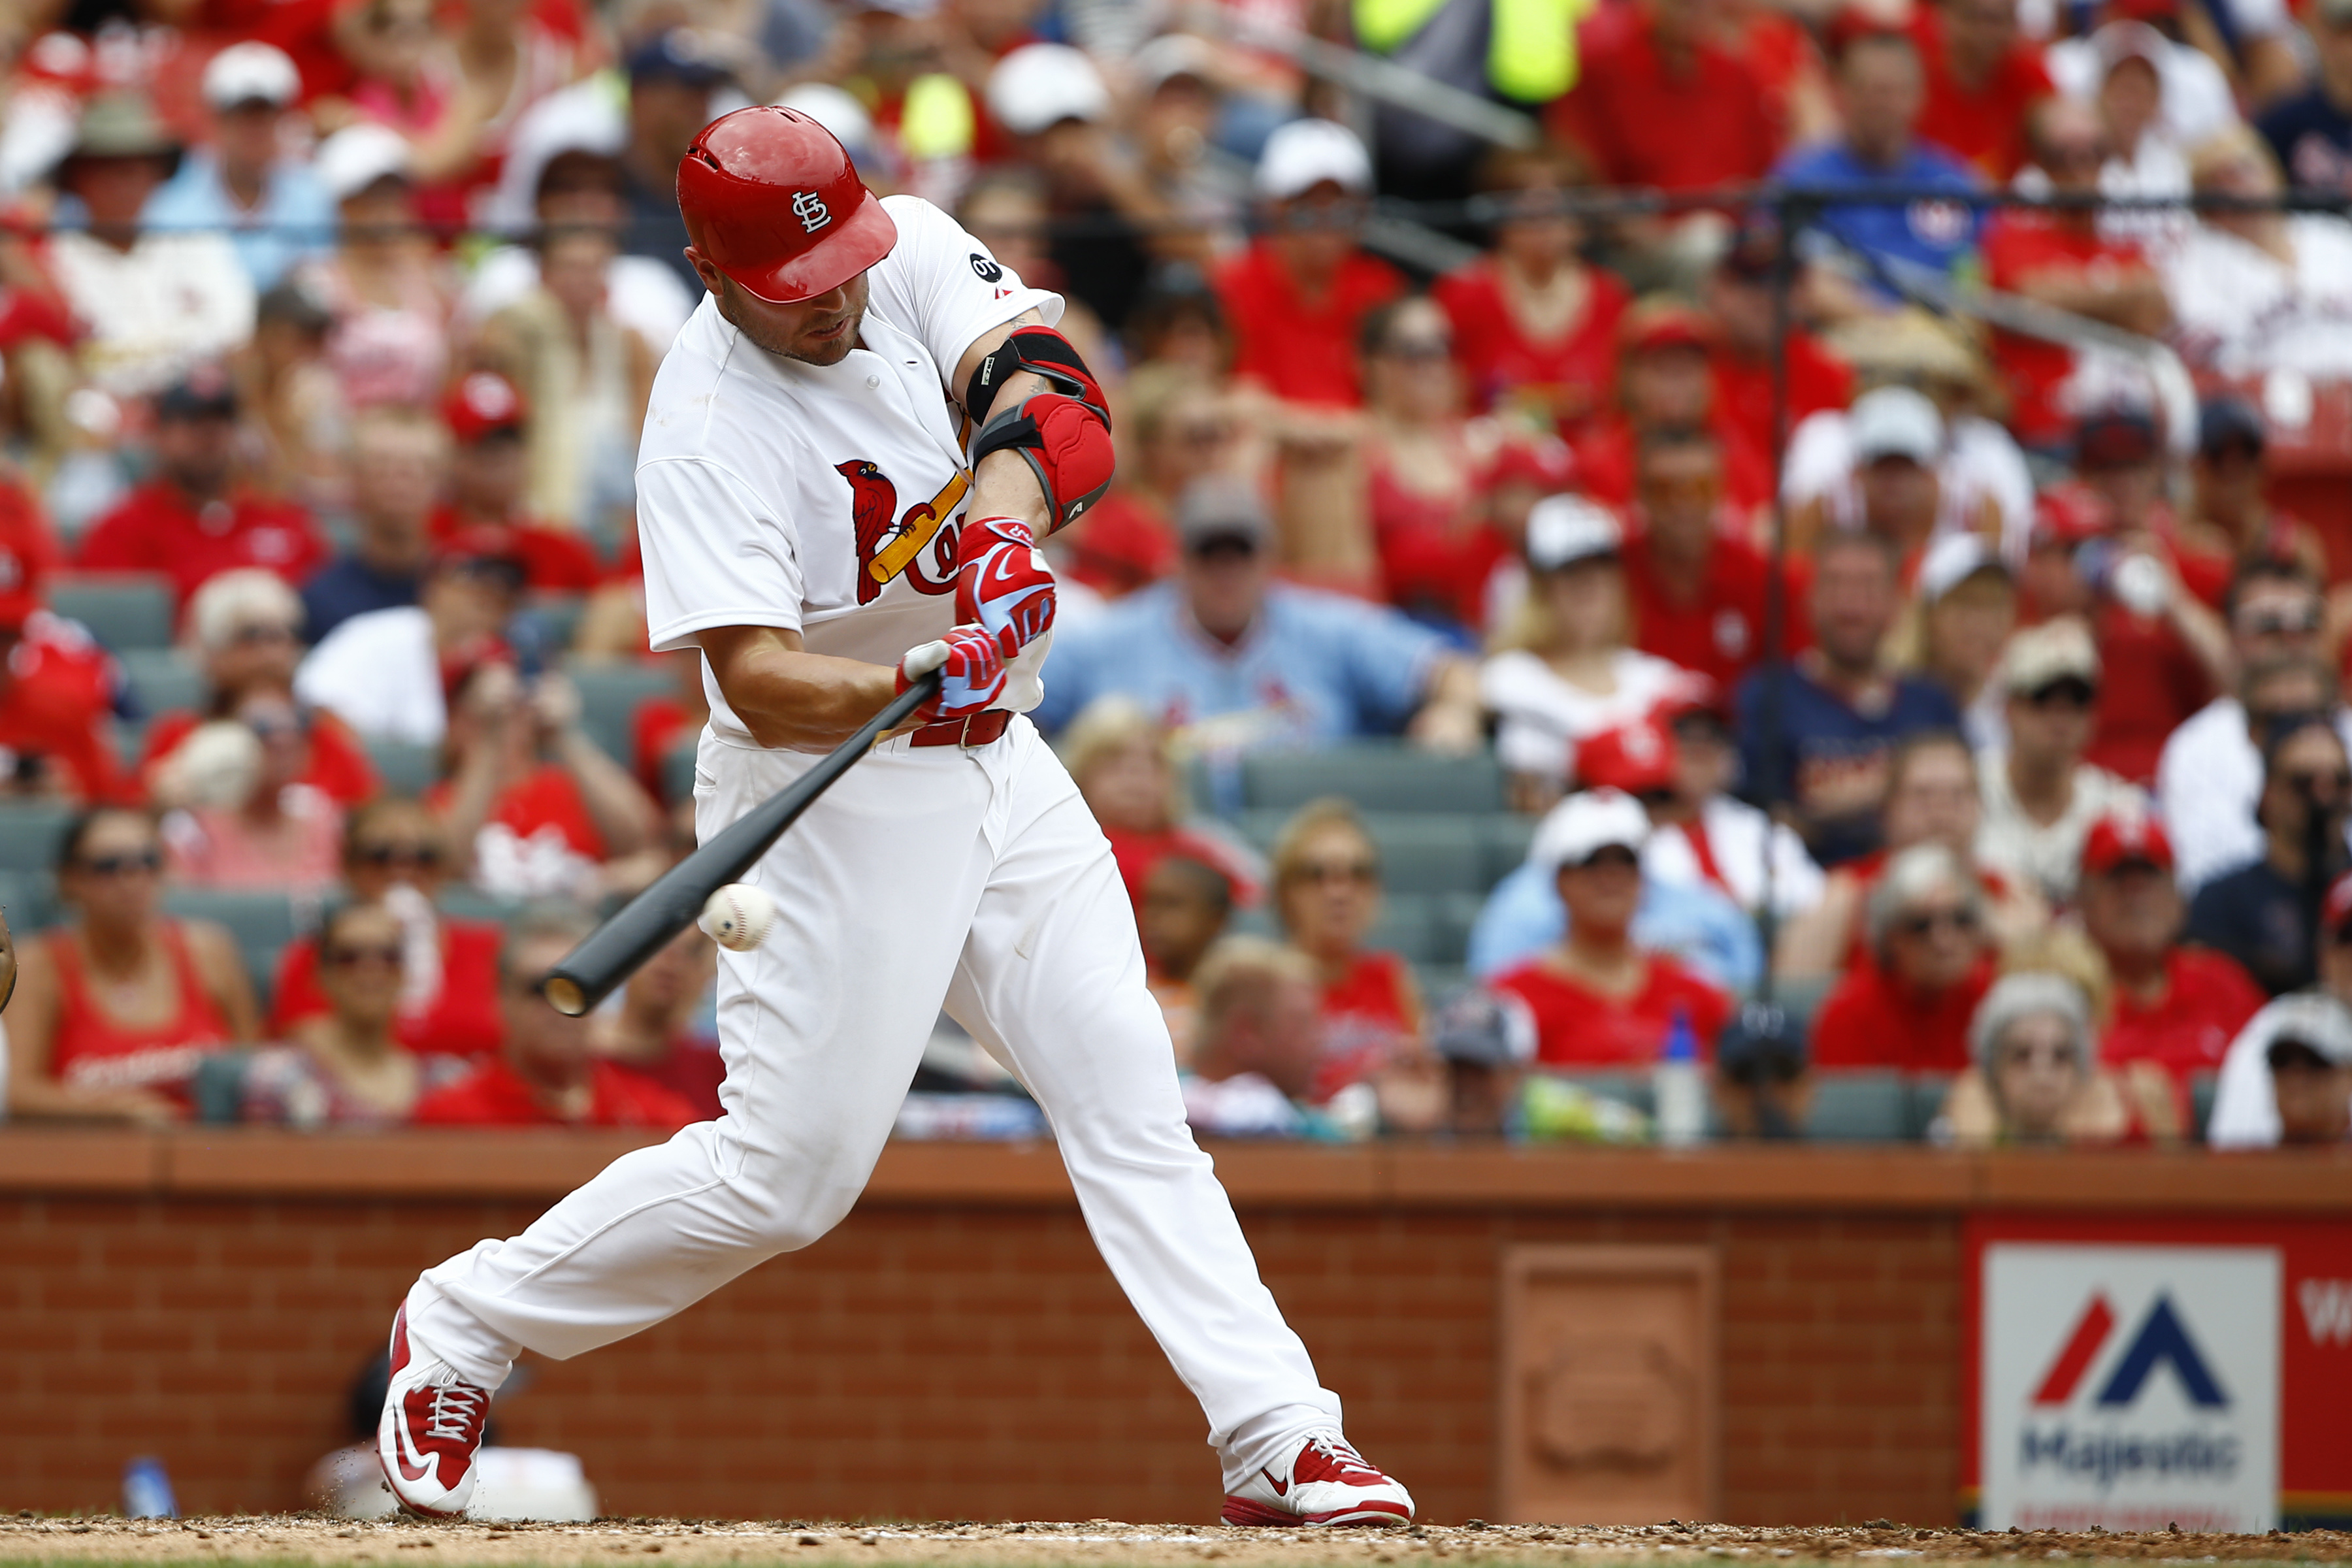 St. Louis Cardinals' Matt Holliday hits an RBI double during the sixth inning of a baseball game against the Atlanta Braves, Sunday, July 26, 2015, in St. Louis. (AP Photo/Billy Hurst)